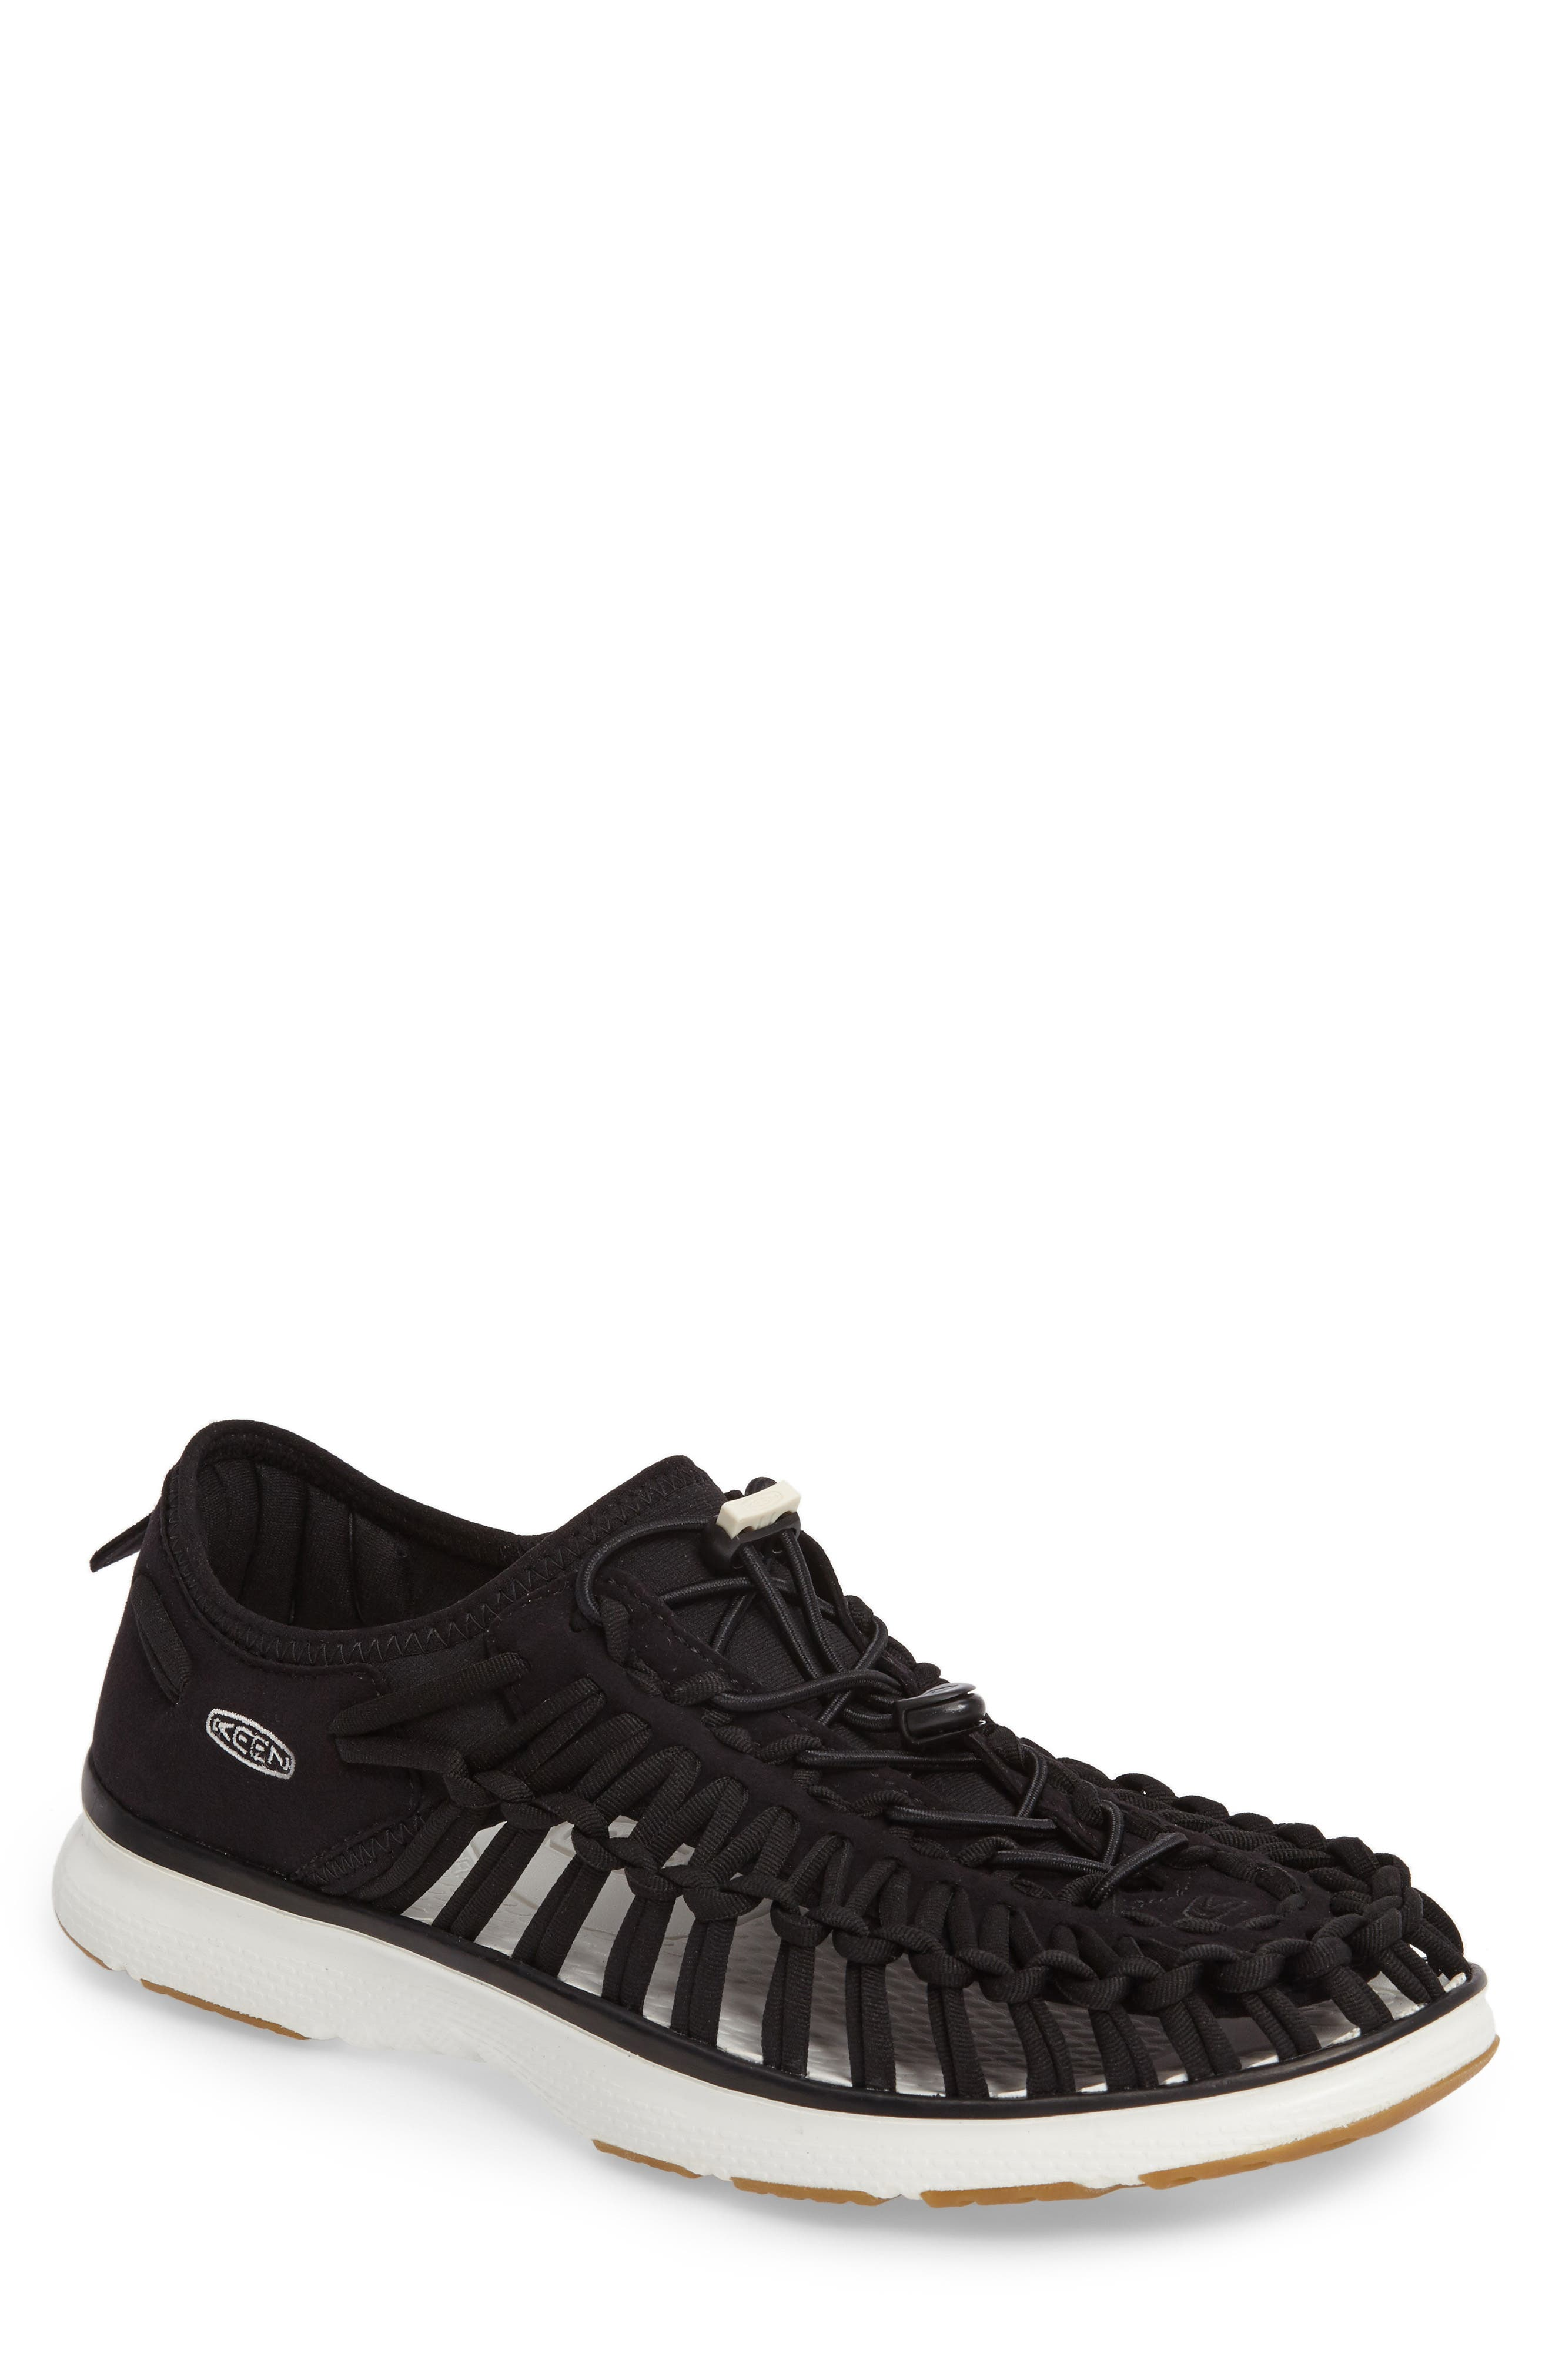 Uneek O2 Water Sneaker,                         Main,                         color, Black/ Harvest Gold Fabric